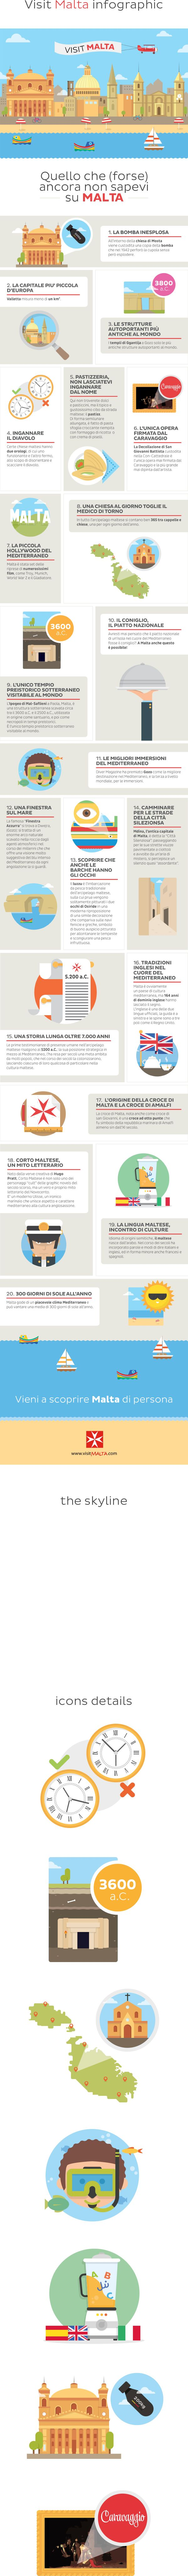 Visit Malta Infographic by Gigasweb, via Behance